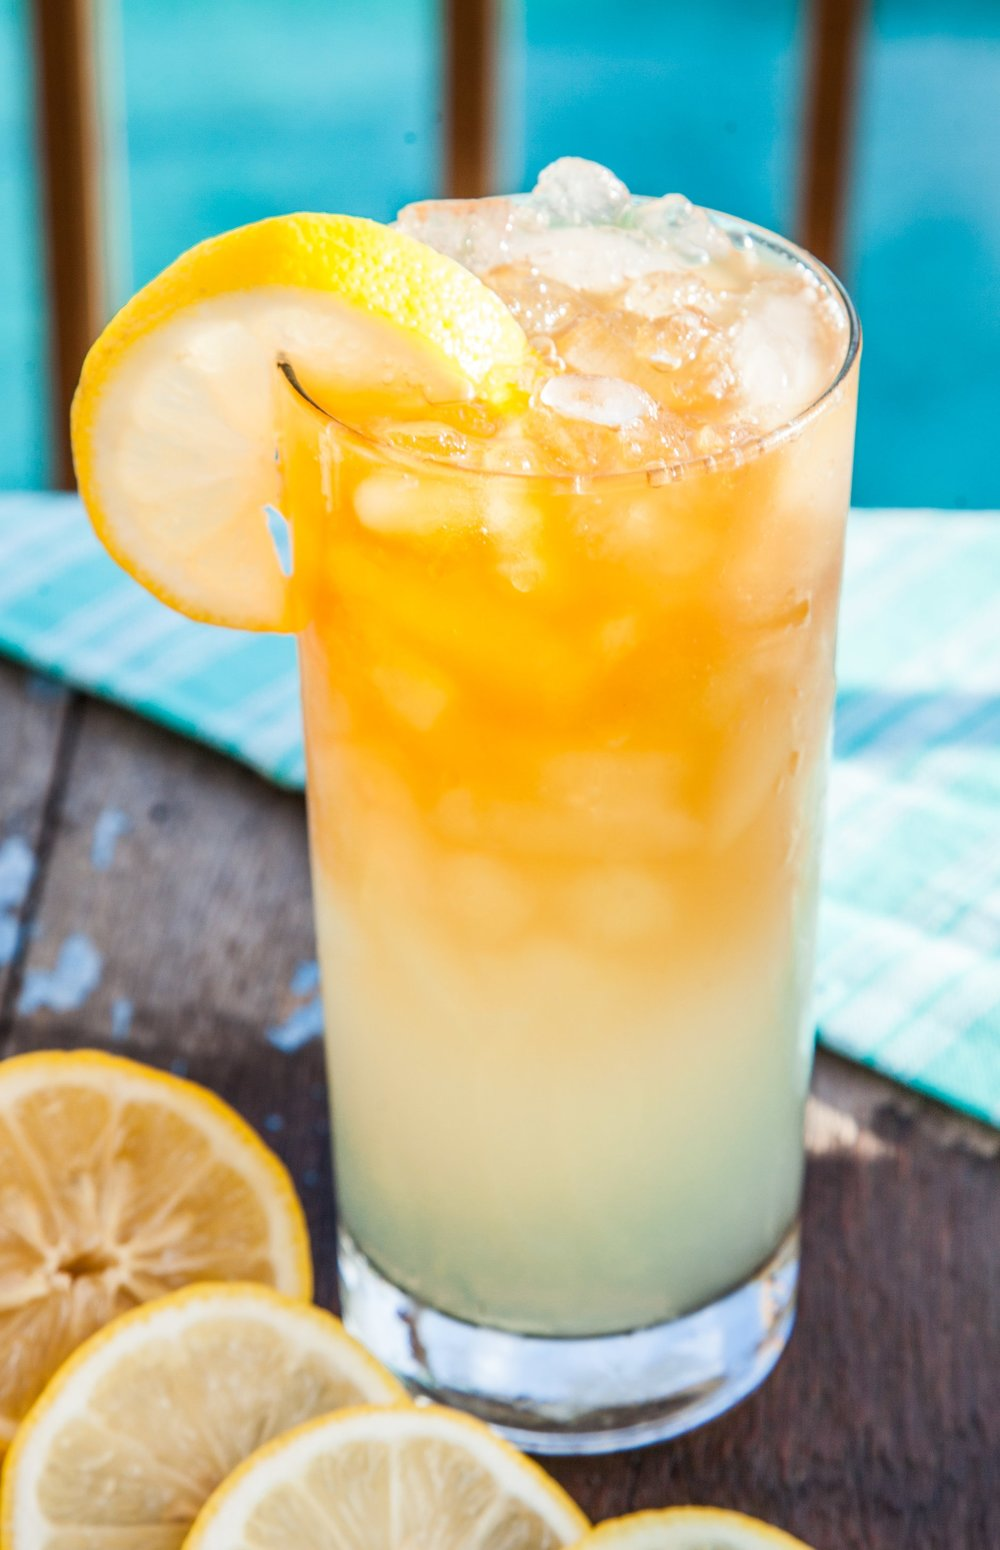 Fresh Half & HalfArnold Palmer - Half fresh brewed iced tea , half fresh squeezed lemonade. It's the perfect combination. If you like it out of a can, you'll love it fresh. Add any flavor to make it even more delicious.Most popular: Mango Arnold Palmer